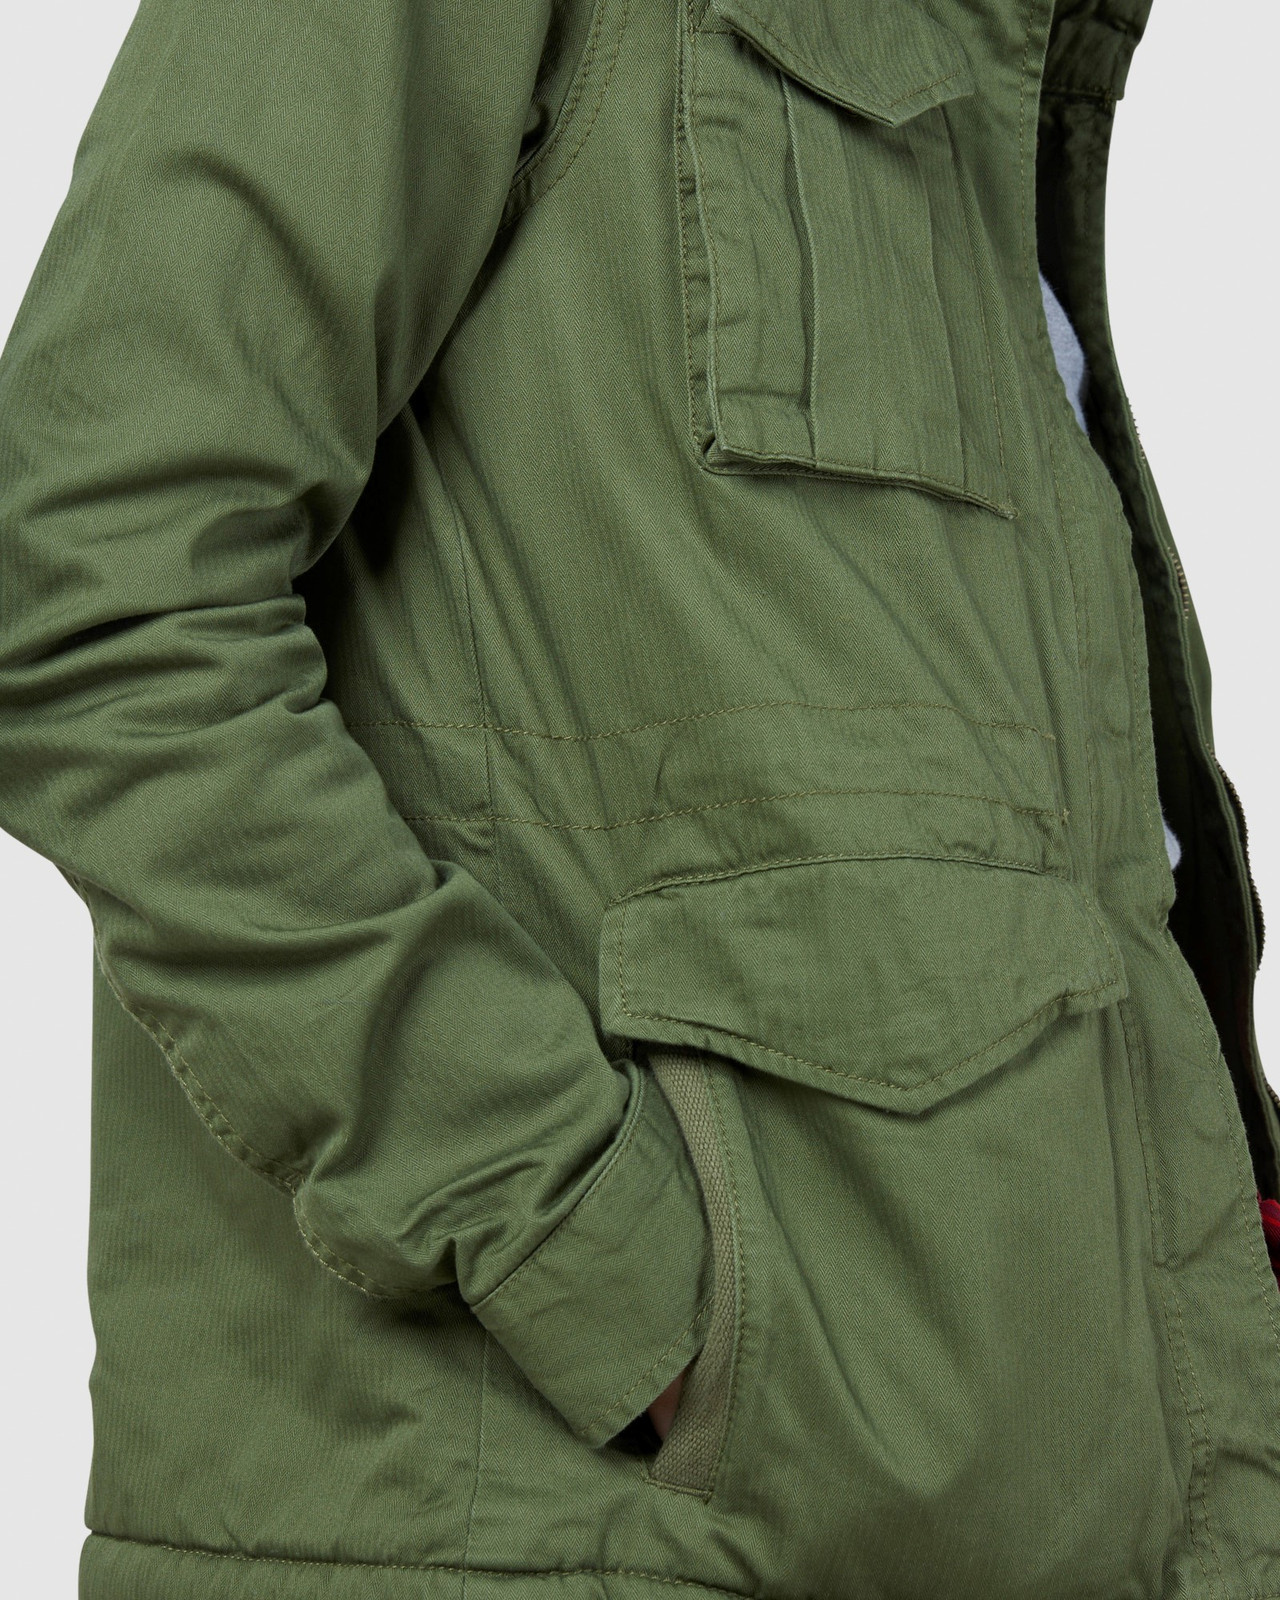 Superdry Womens CLASSIC RECRUIT BORG JACKET Green Military Jackets 7